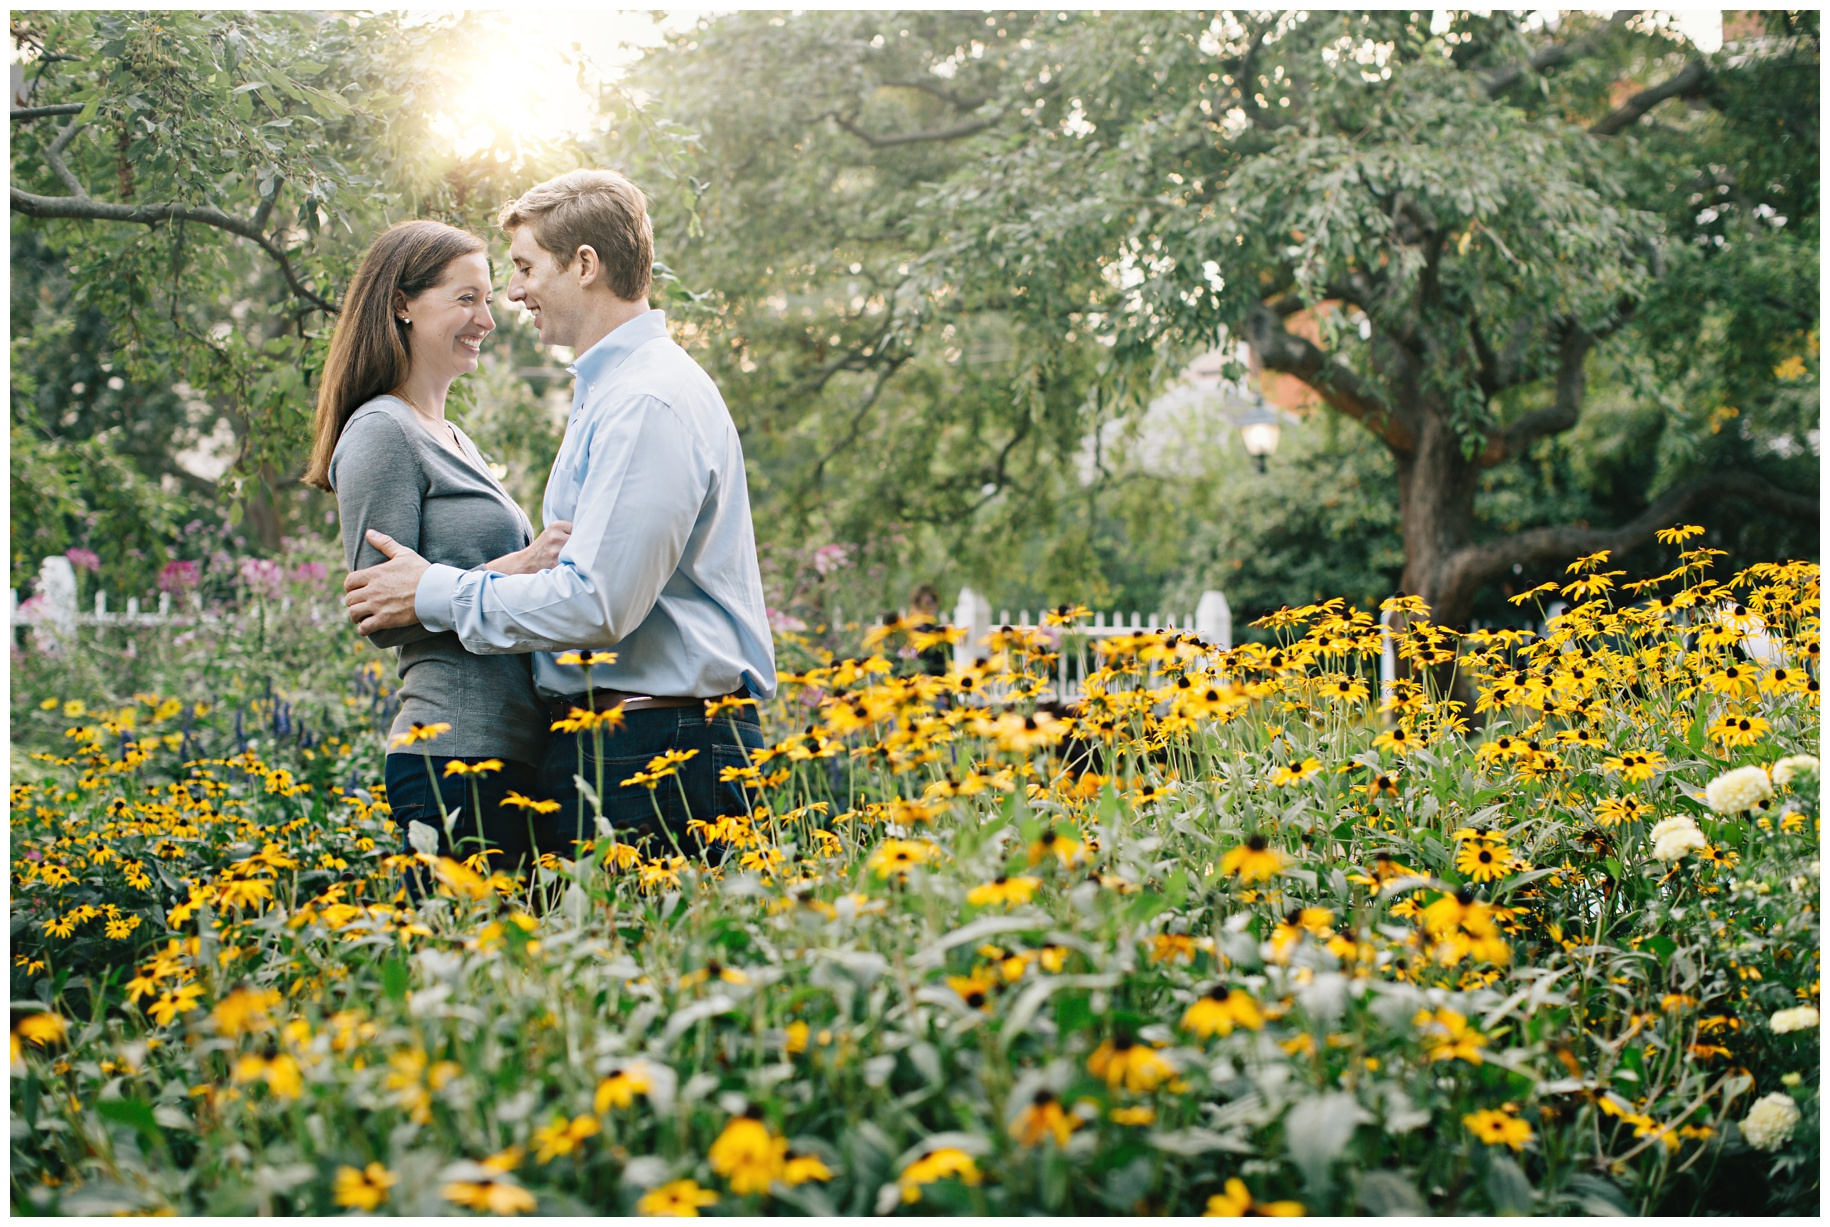 maineweddingphotographer_portsmouth_engagements_newhampshire_newengland-019